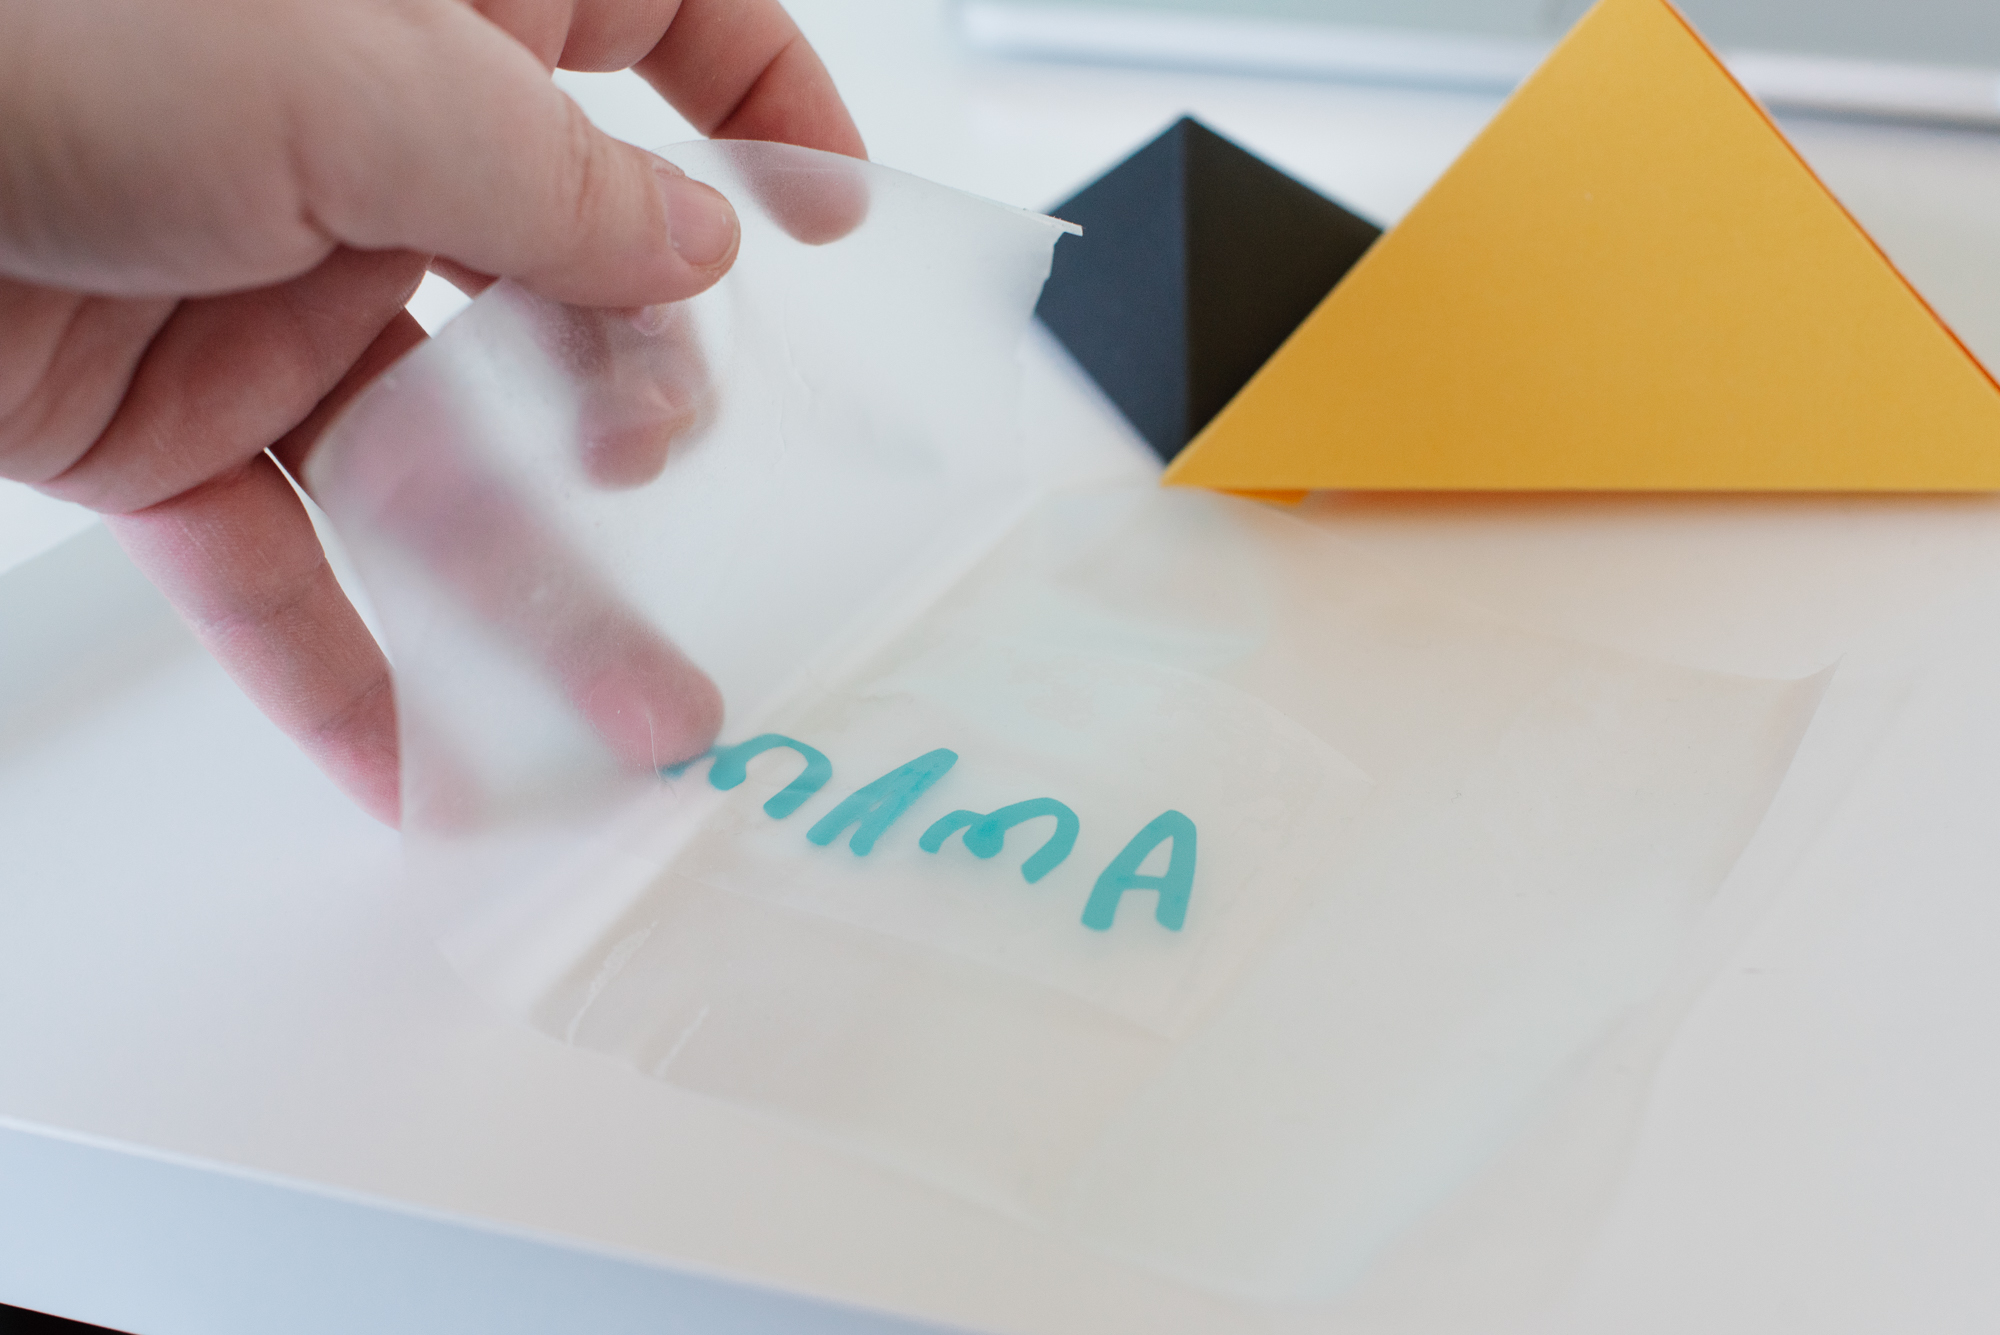 Placing contact paper on vinyl lettering